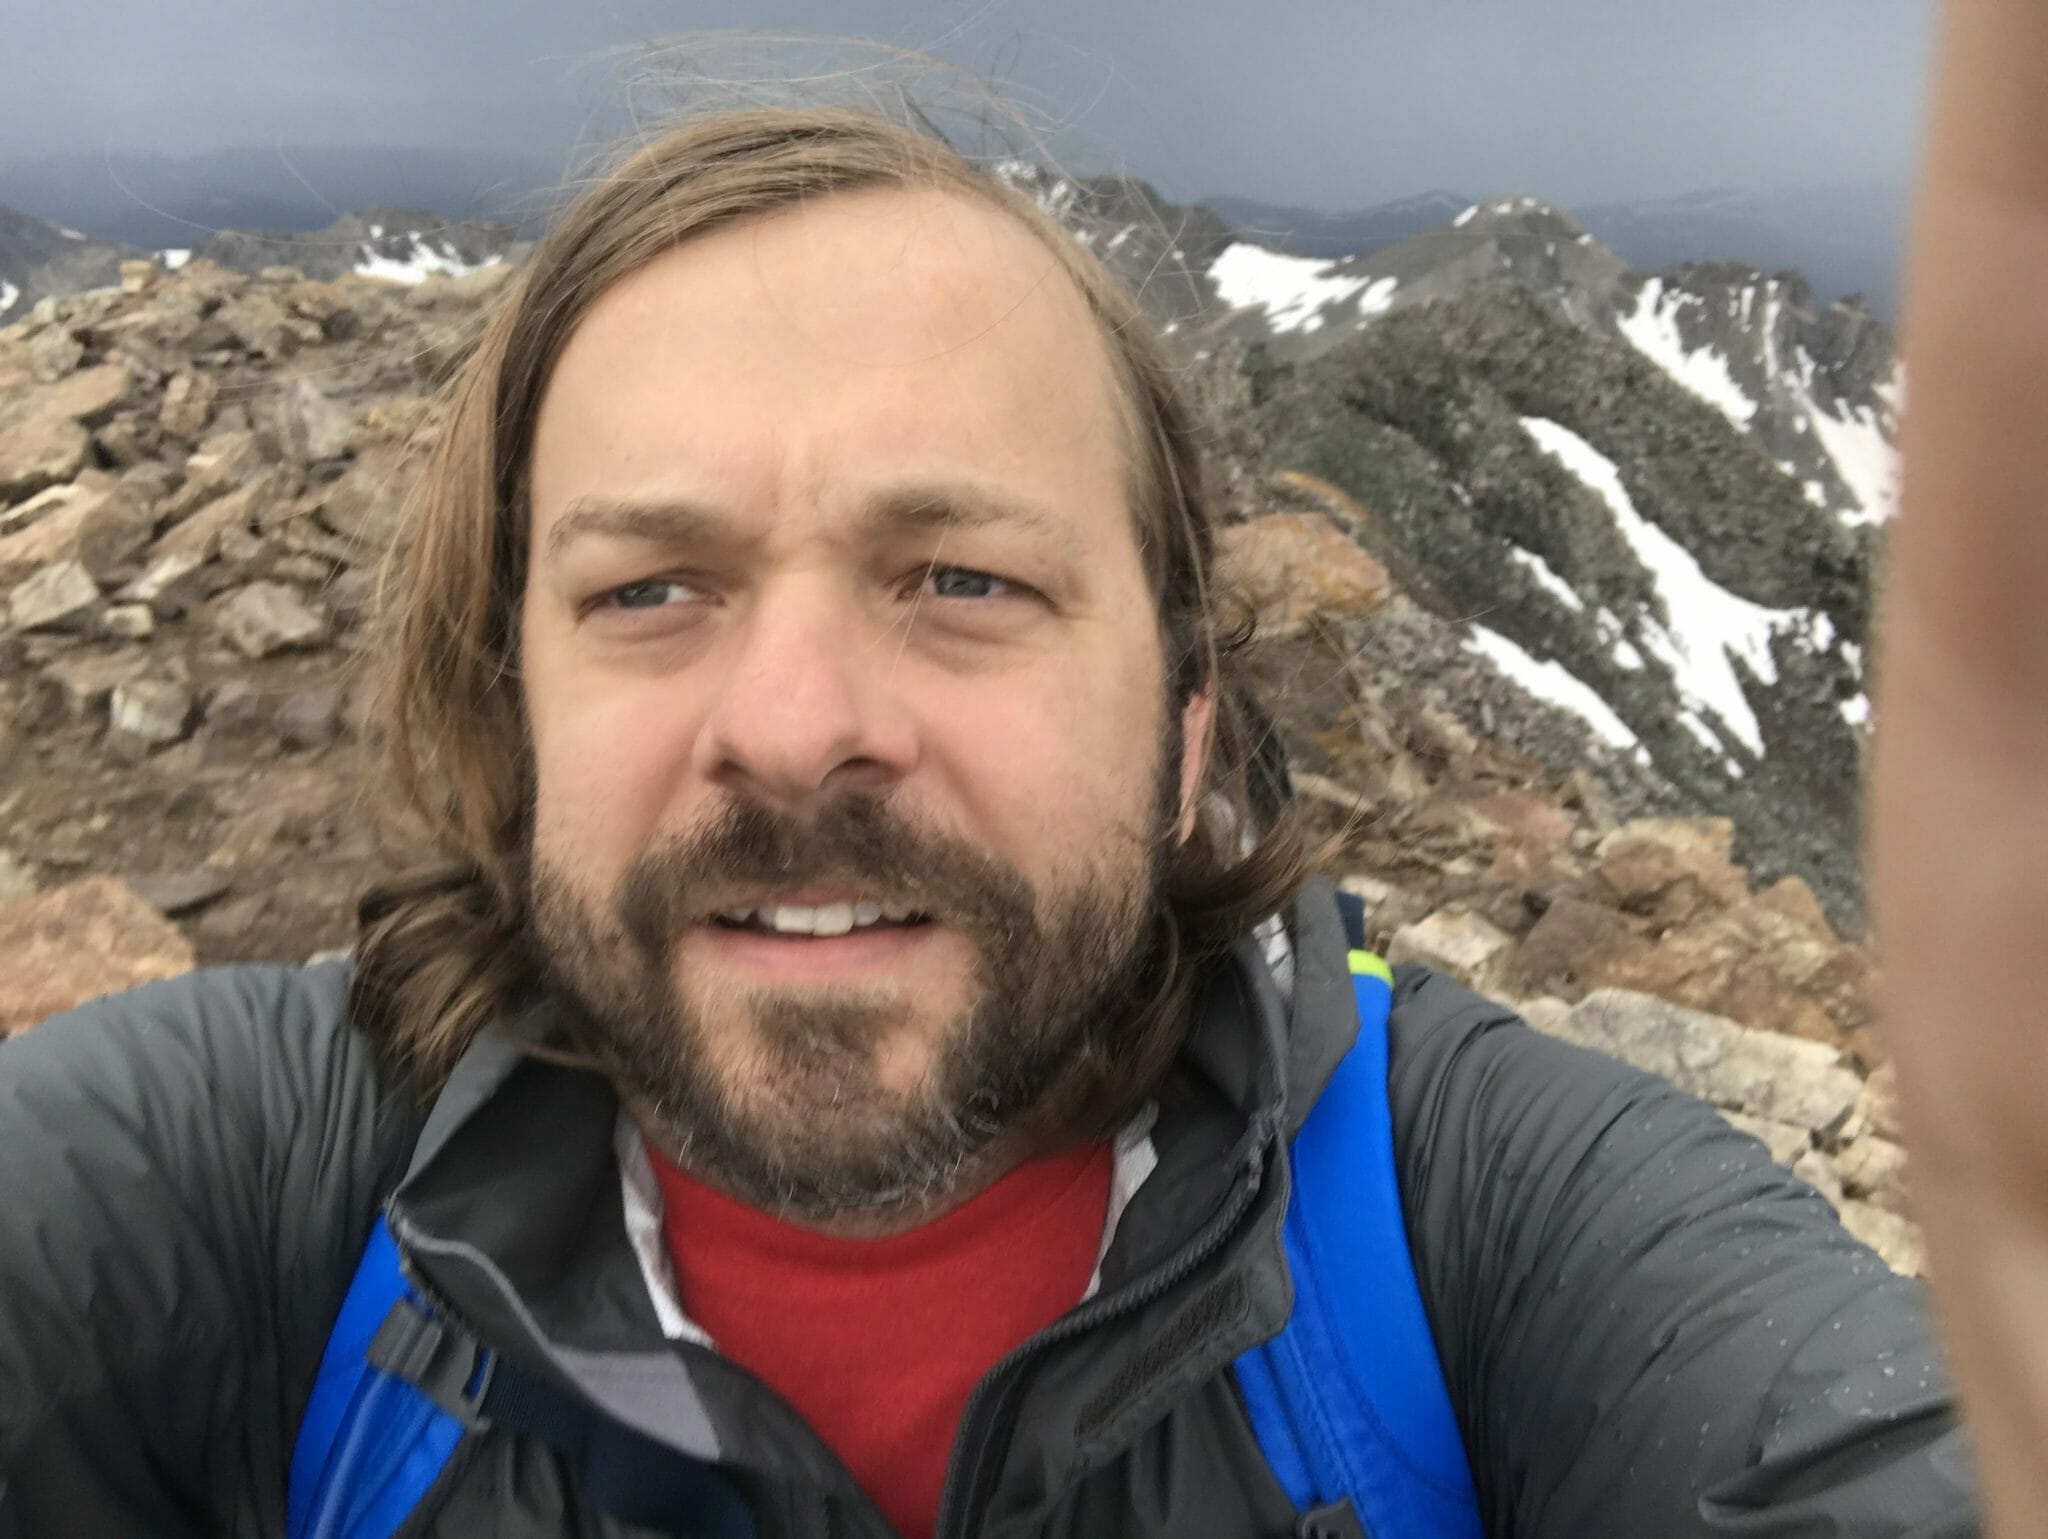 Selfie on Summit of Quandary Mountain